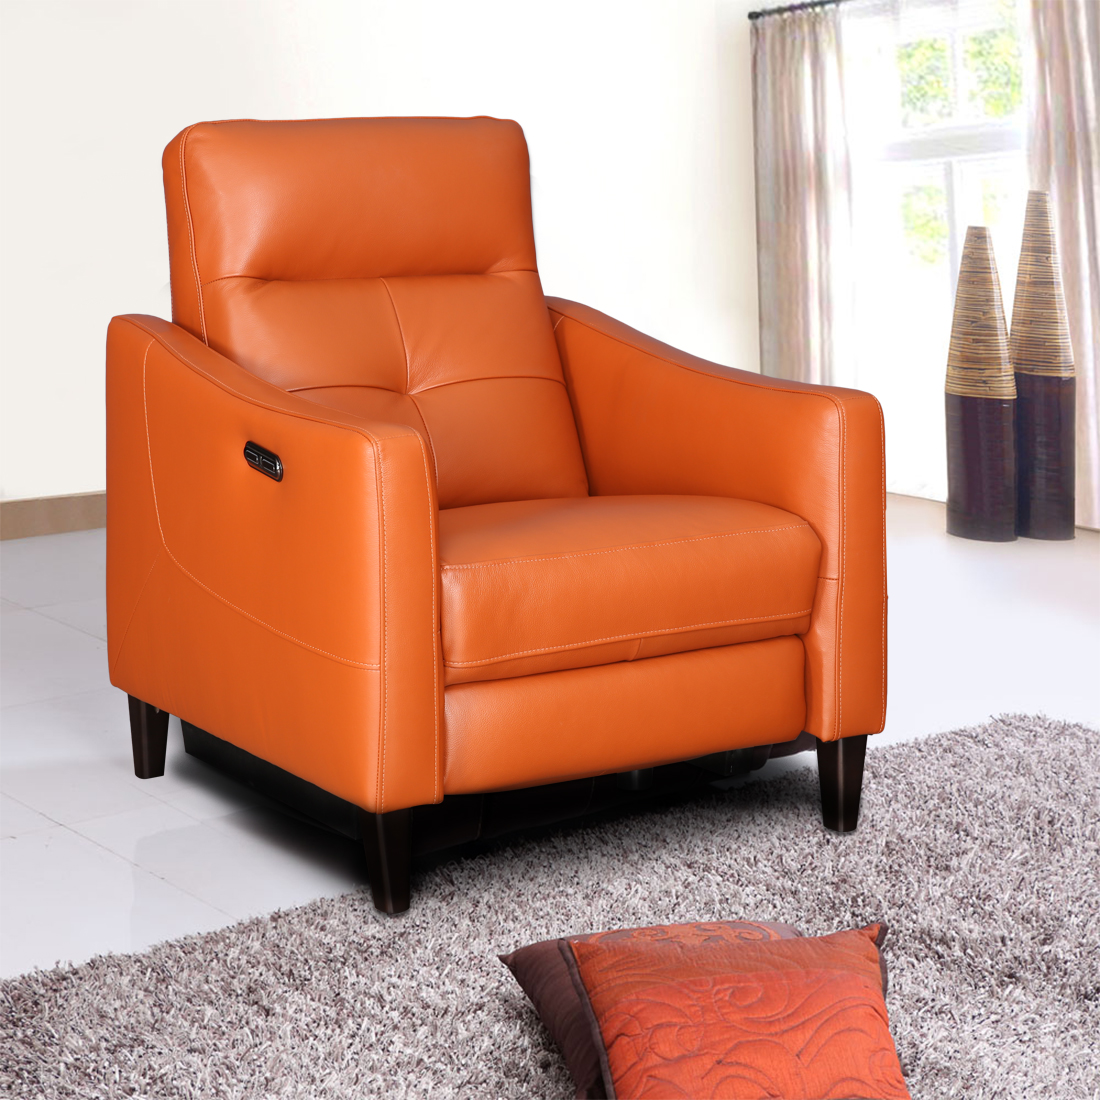 Hilton Half Leather Single Seater Recliner in Tan Colour by HomeTown